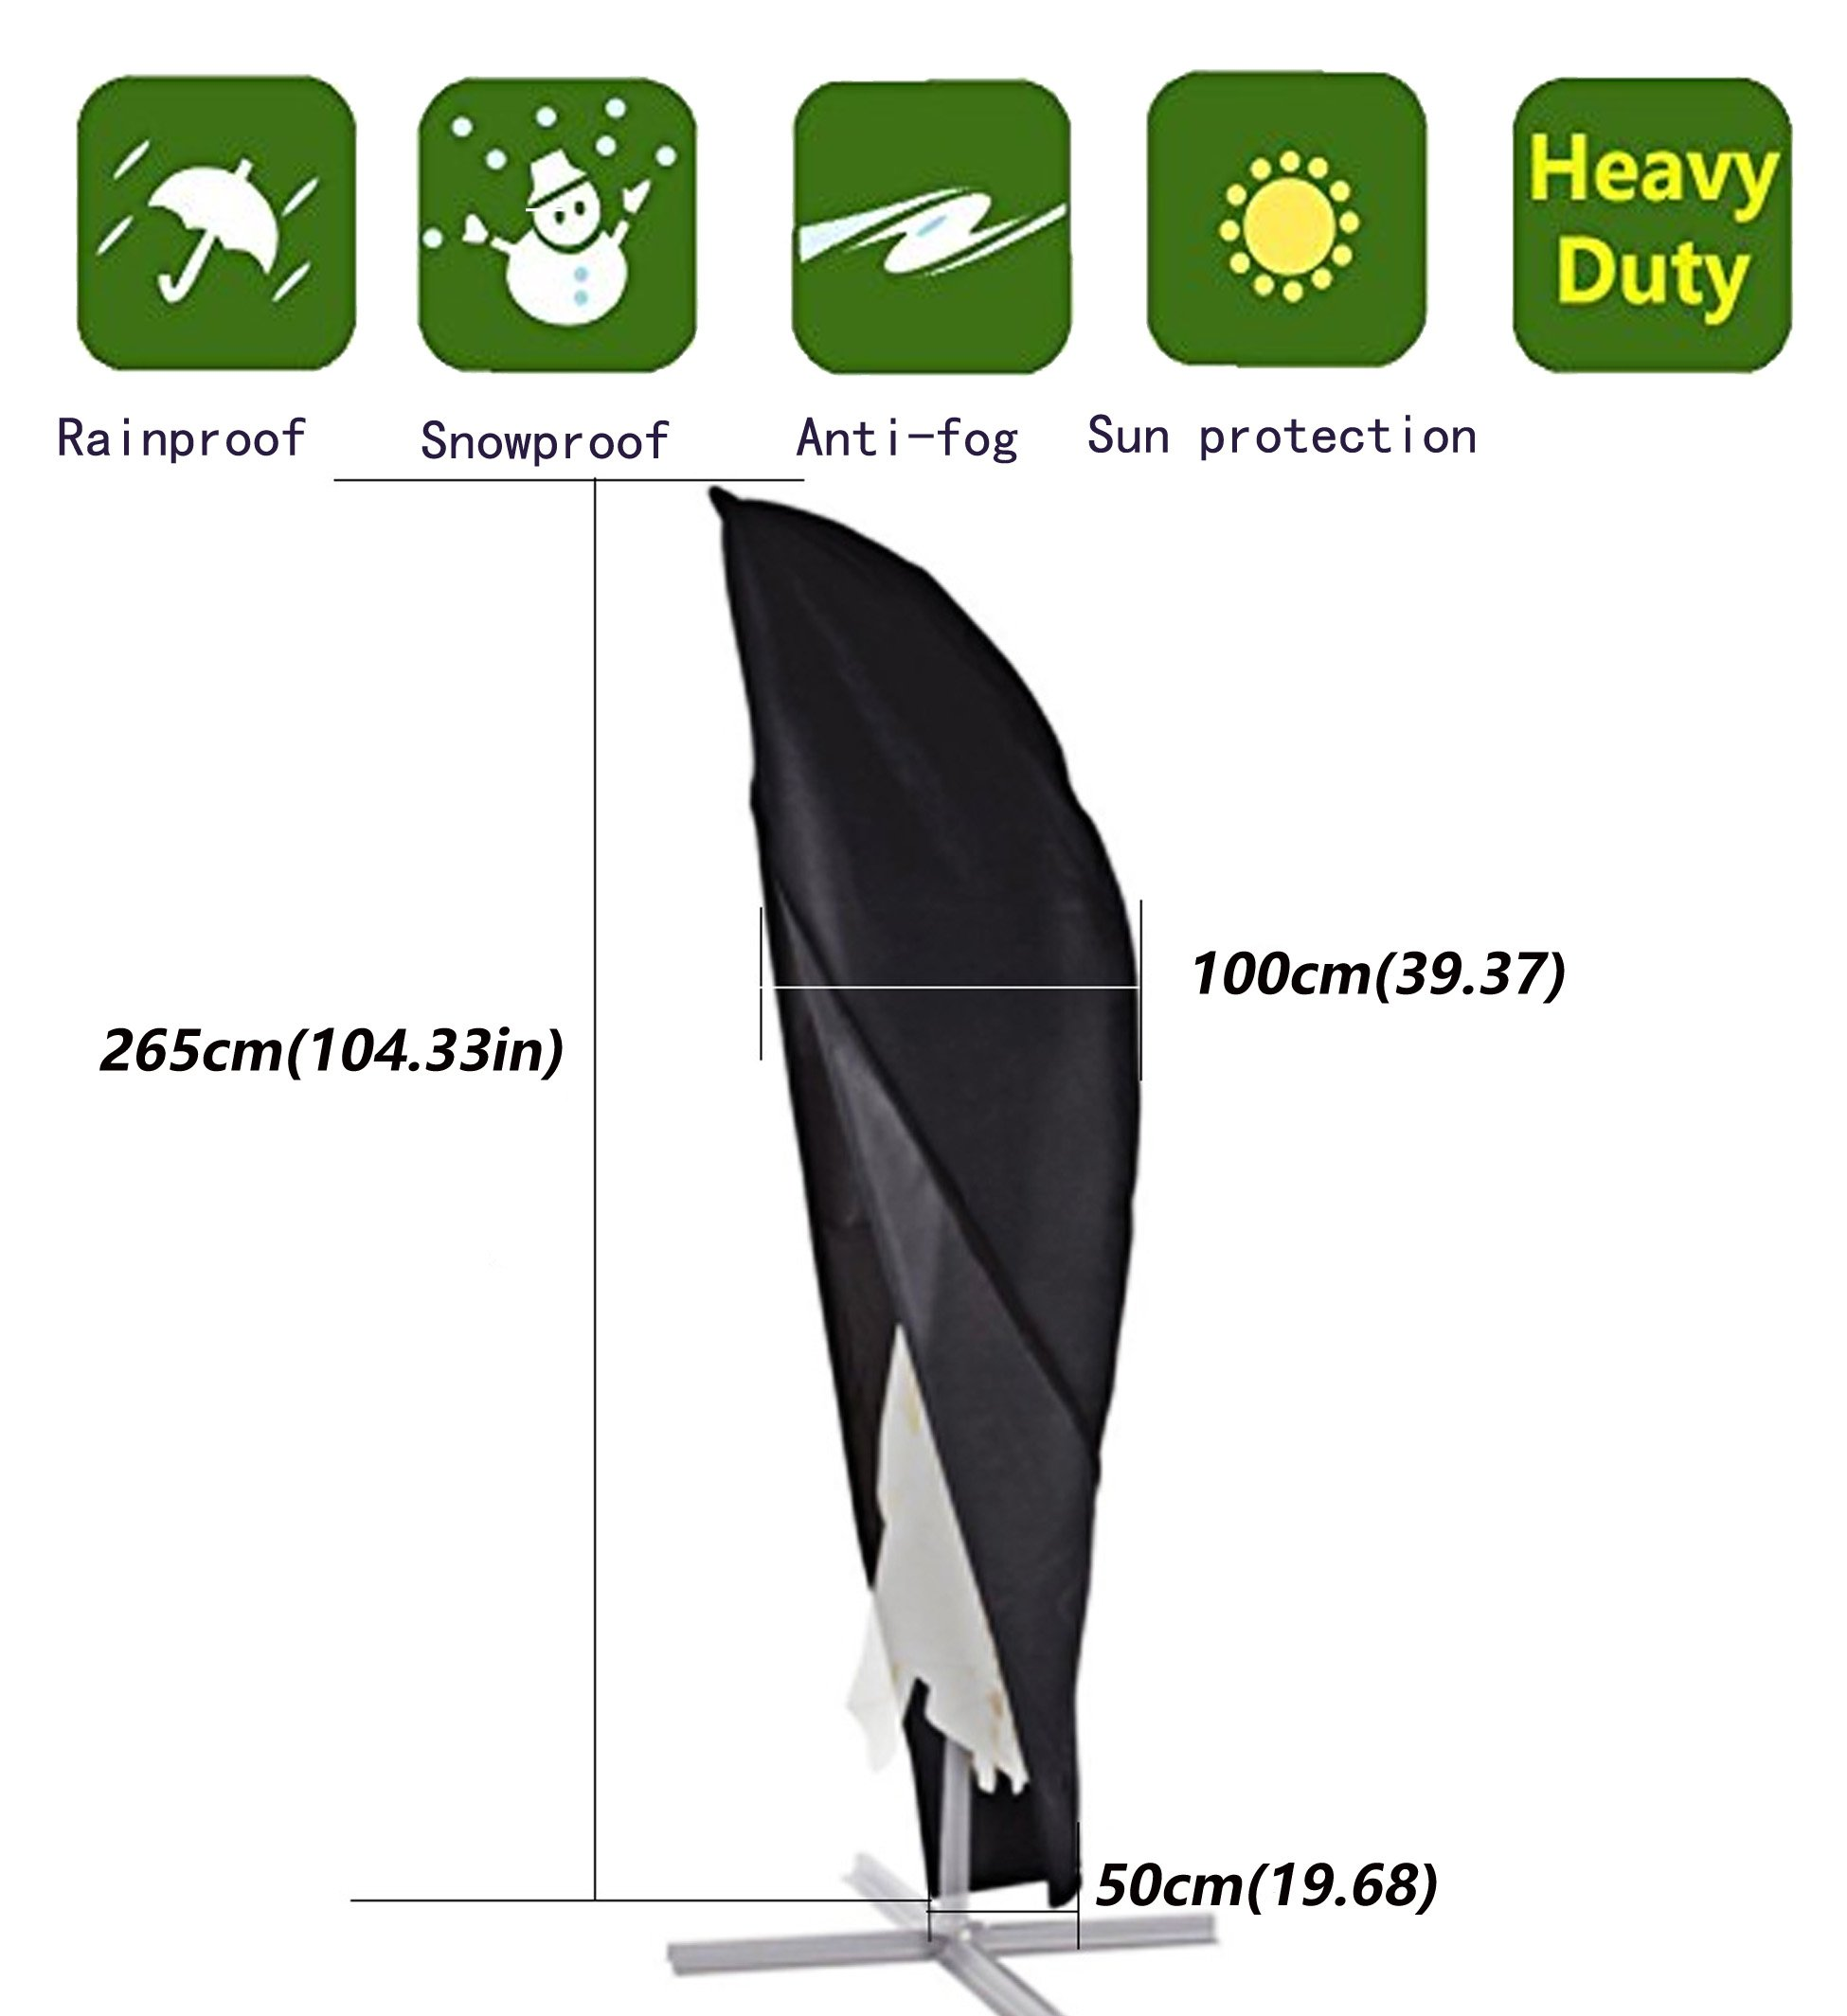 Anderlay Parasol Covers Zipped Parasol Cover Cantilever Parasol Covers Umbrella Covers Balck